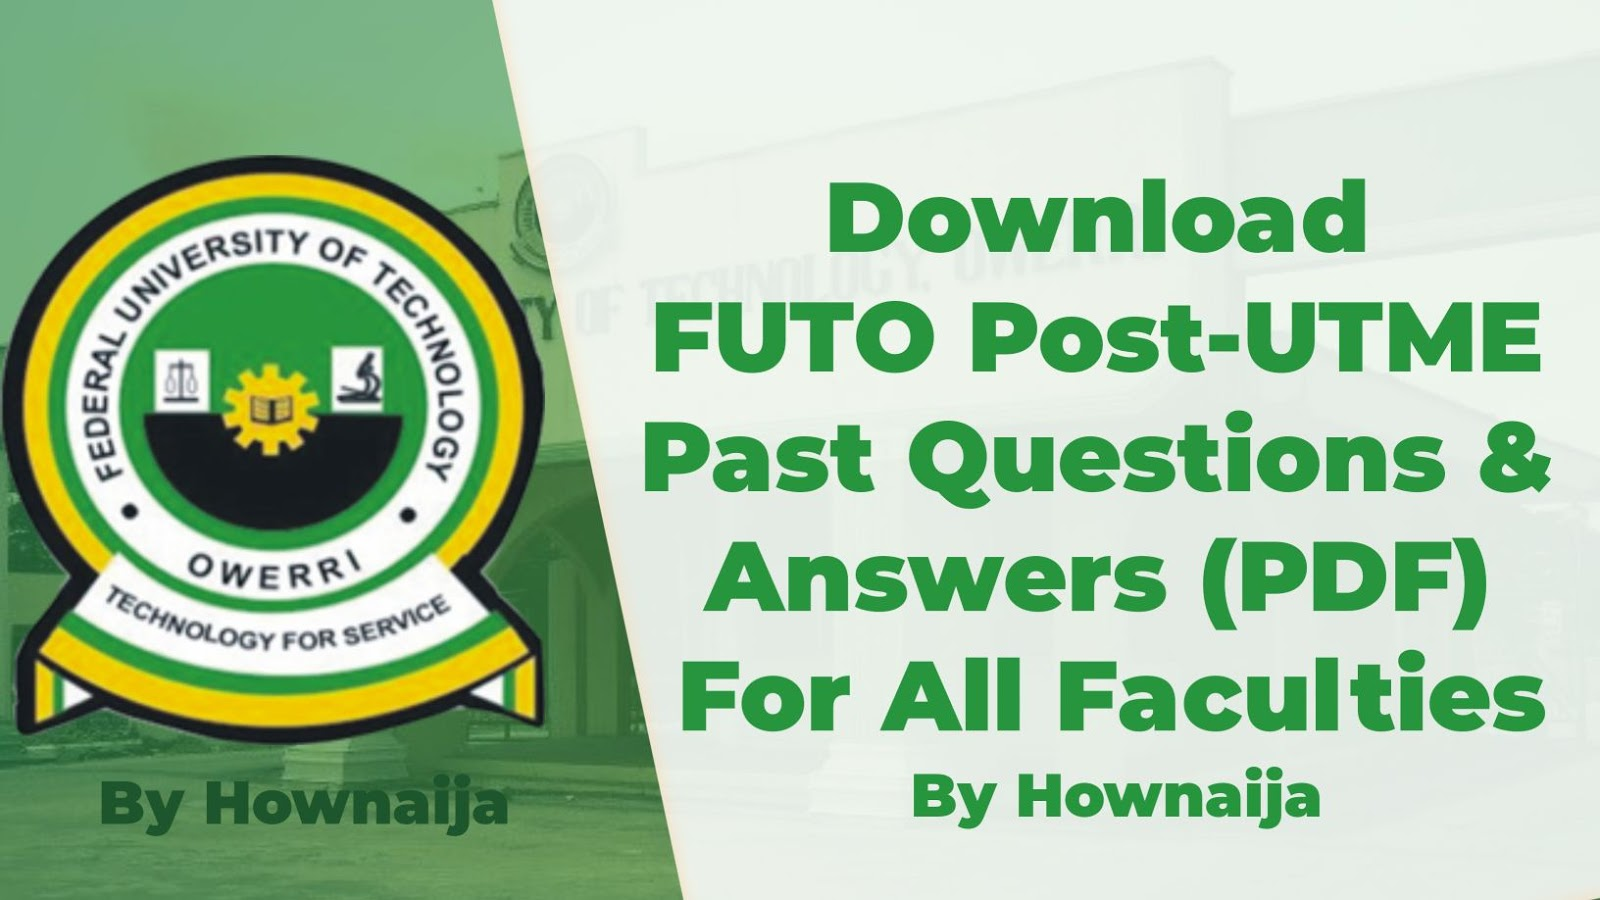 Download FUTO Post-UTME Past Questions & Answers (PDF) For All Faculties